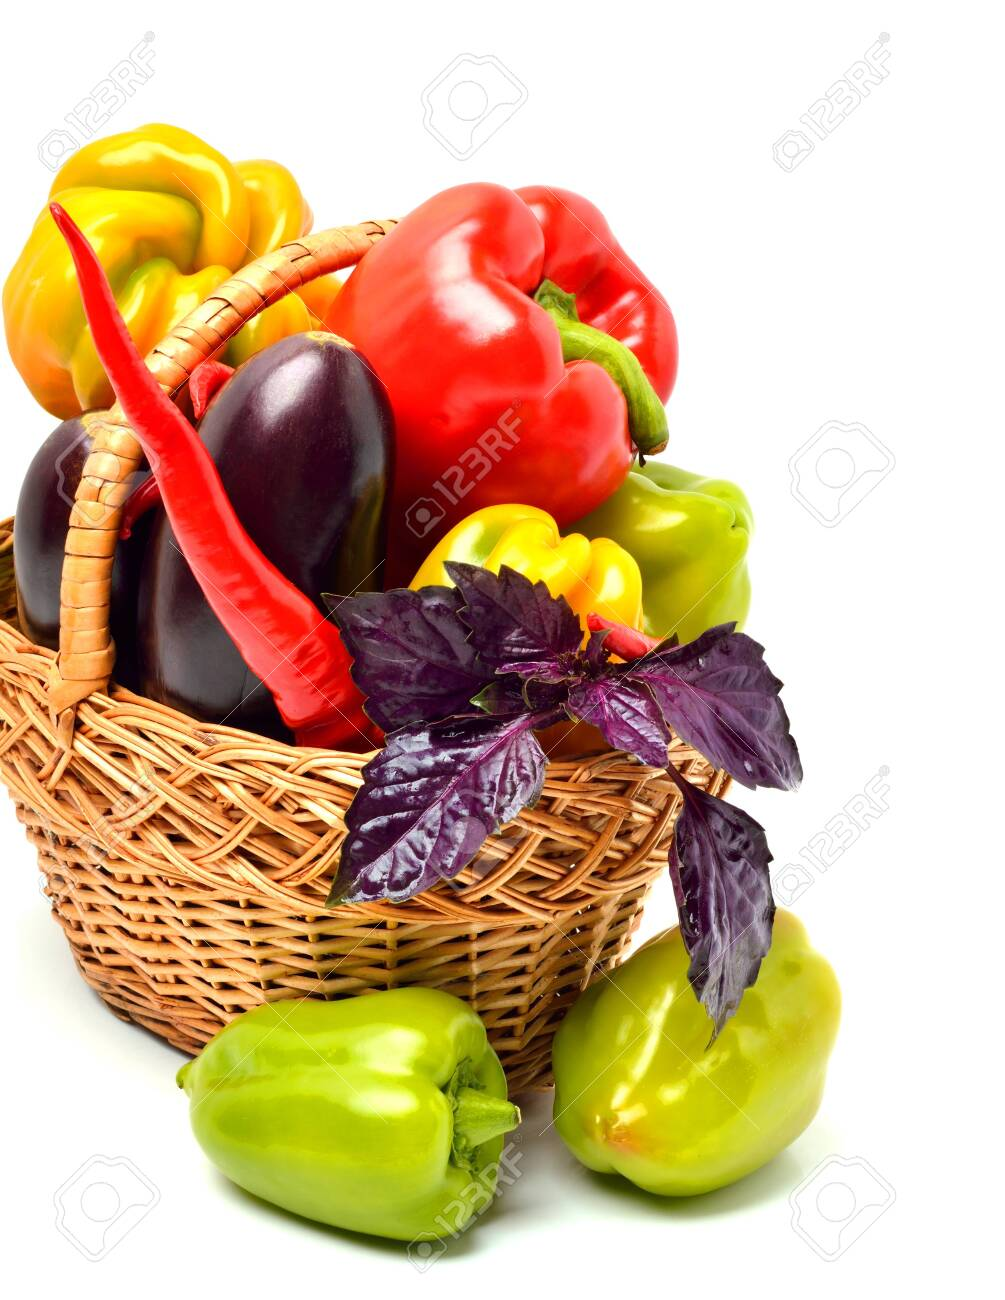 Sweet peppers, eggplant, chilli pepper and basil in the basket isolated on white background - 121736317